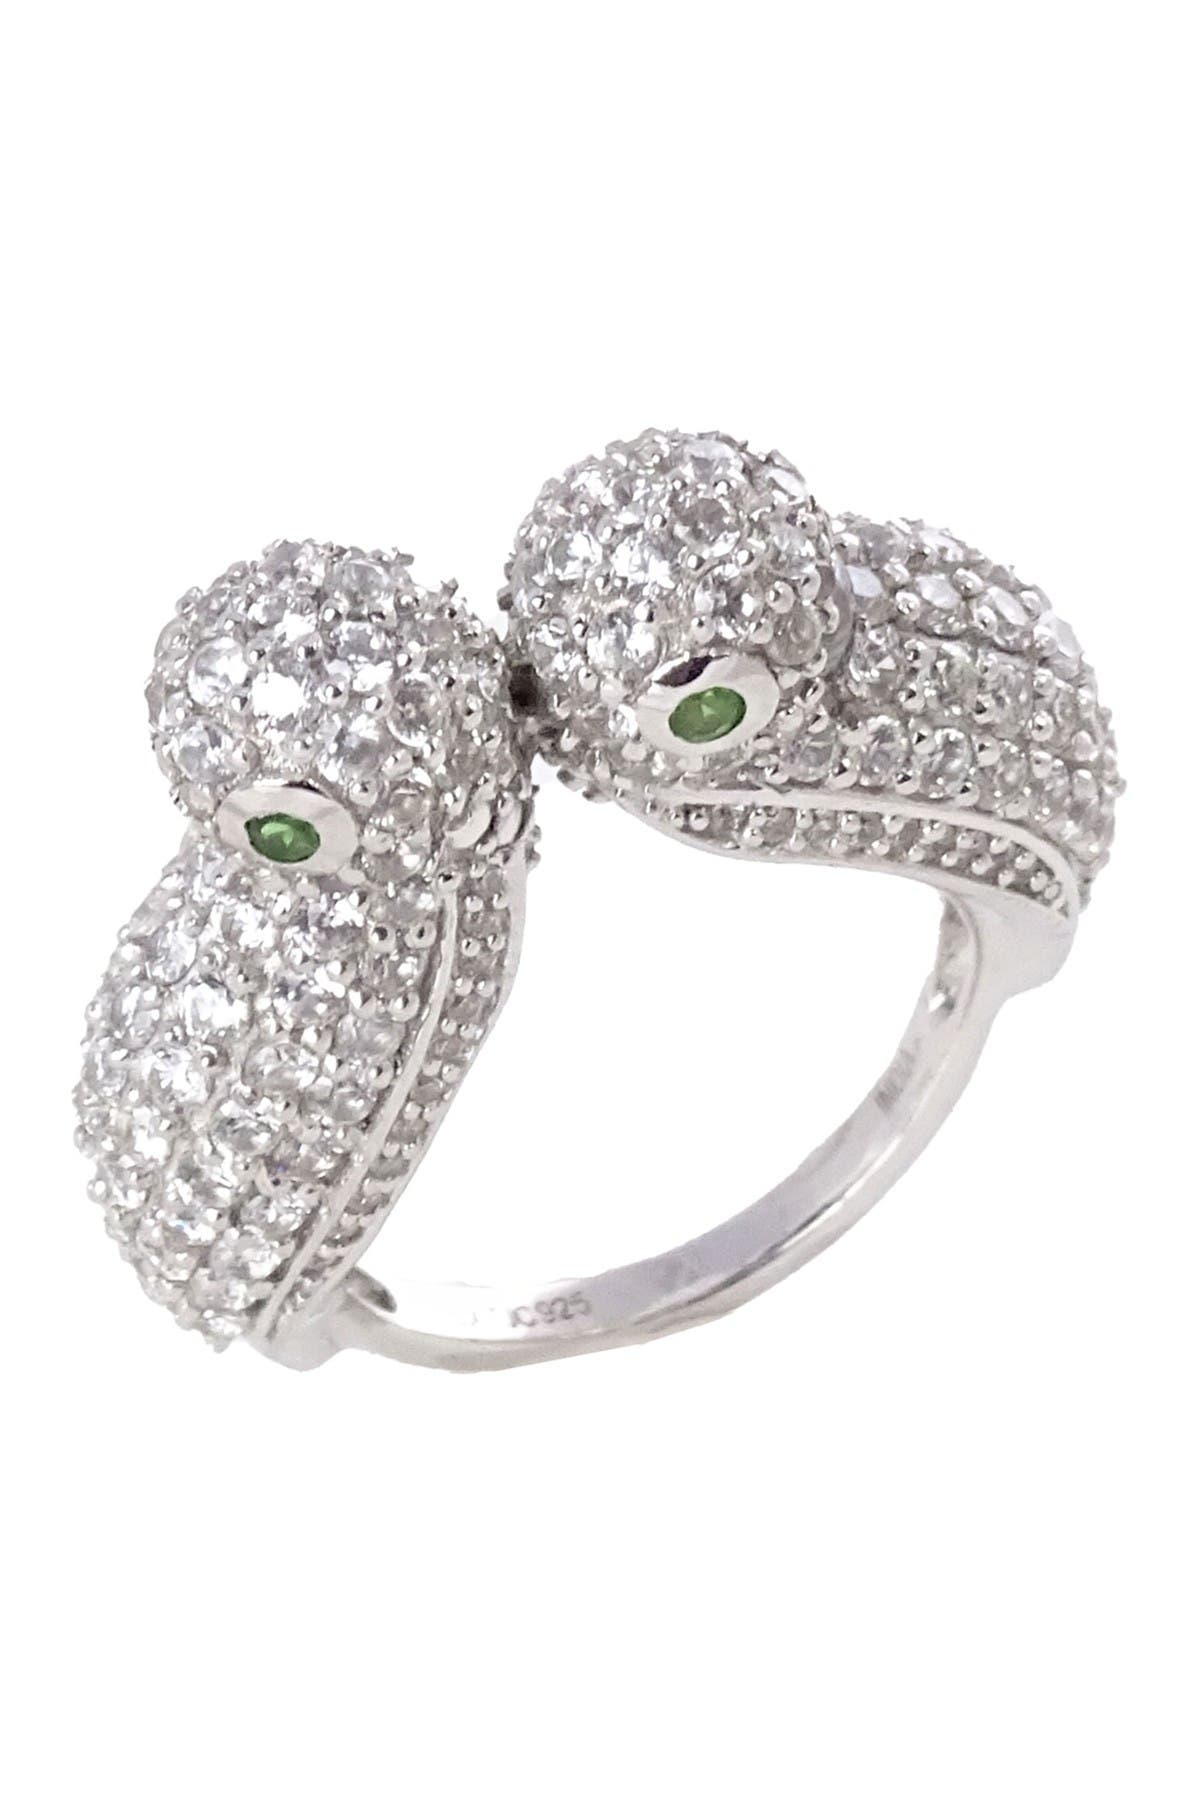 Savvy Cie Sterling Silver White Zircon & Gem Lovers Ring at Nordstrom Rack